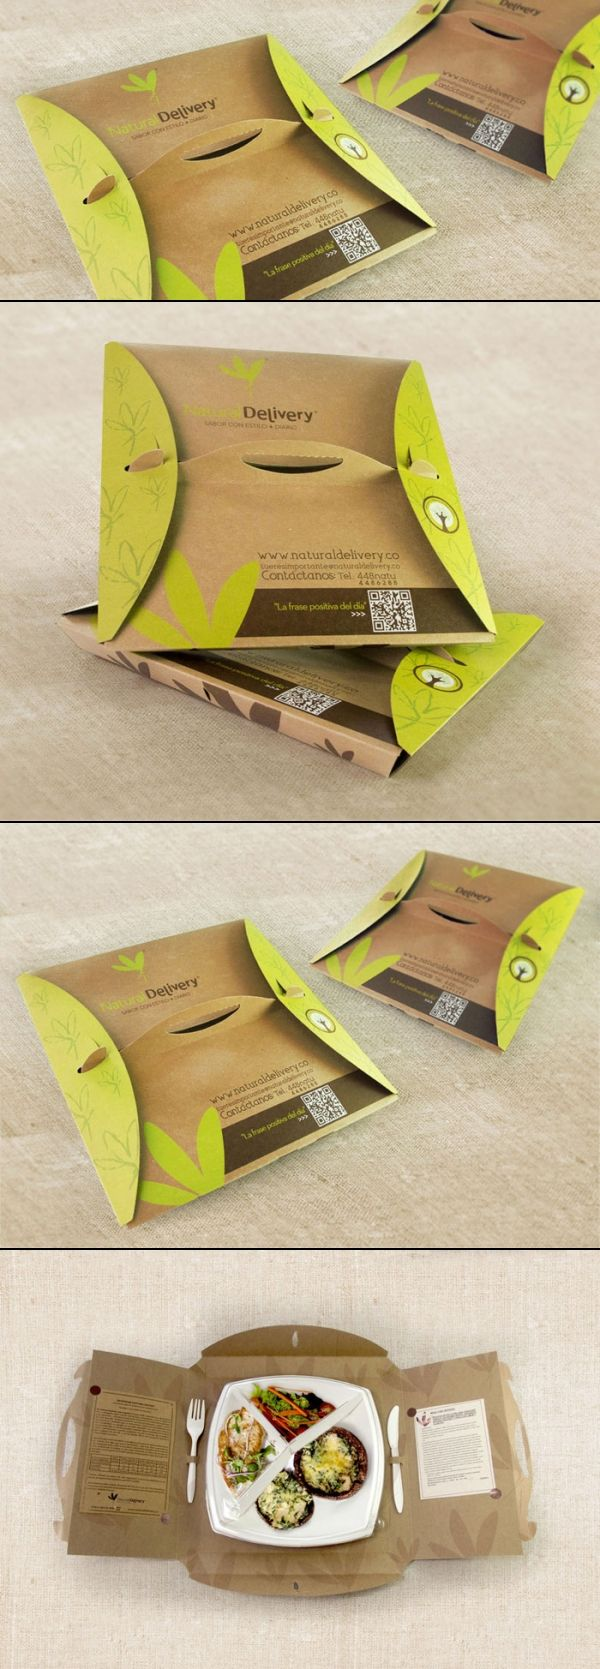 Natural Delivery.An integral packaging design is developed for Natural Delivery…